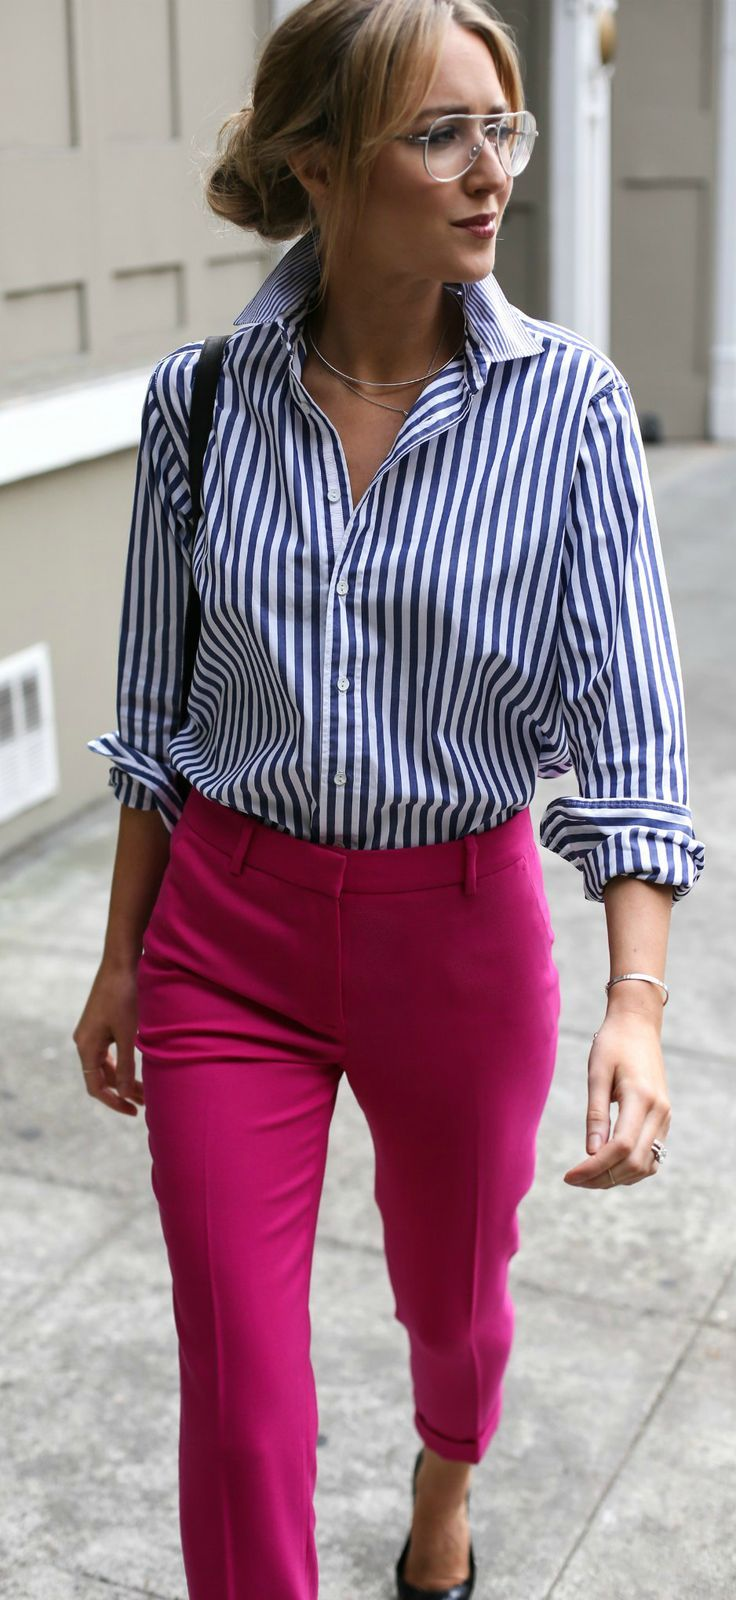 Black t shirt goes with - Fuchsia Pants With Blue Stripped Shirt Could Also Be Paired With Yellow Pants Pink